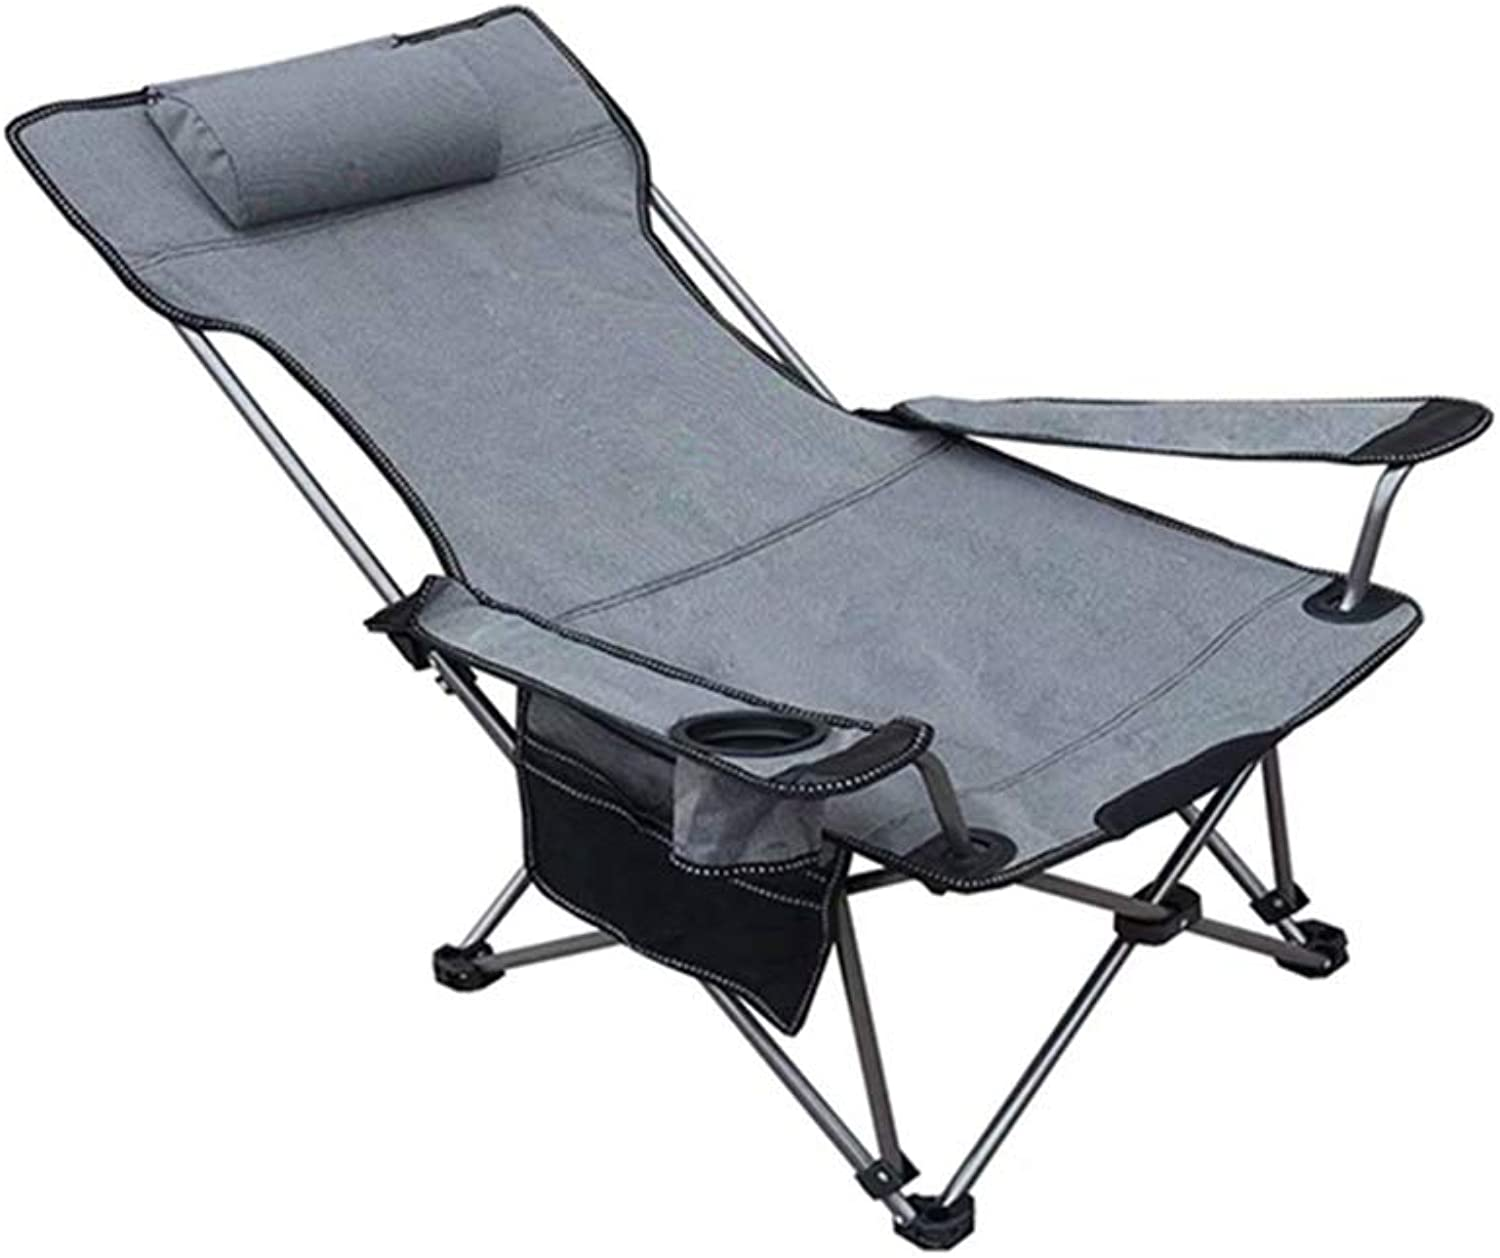 HPLL Folding Reclining Chair Camping Deck Chairs, Portable Deck Chairs for Indoor Office Lunch Break Lazy Couch Backrest Lounge Chairs Outdoor Wild Beach Sun Camping Garden Deck Reclining Recliner Zer